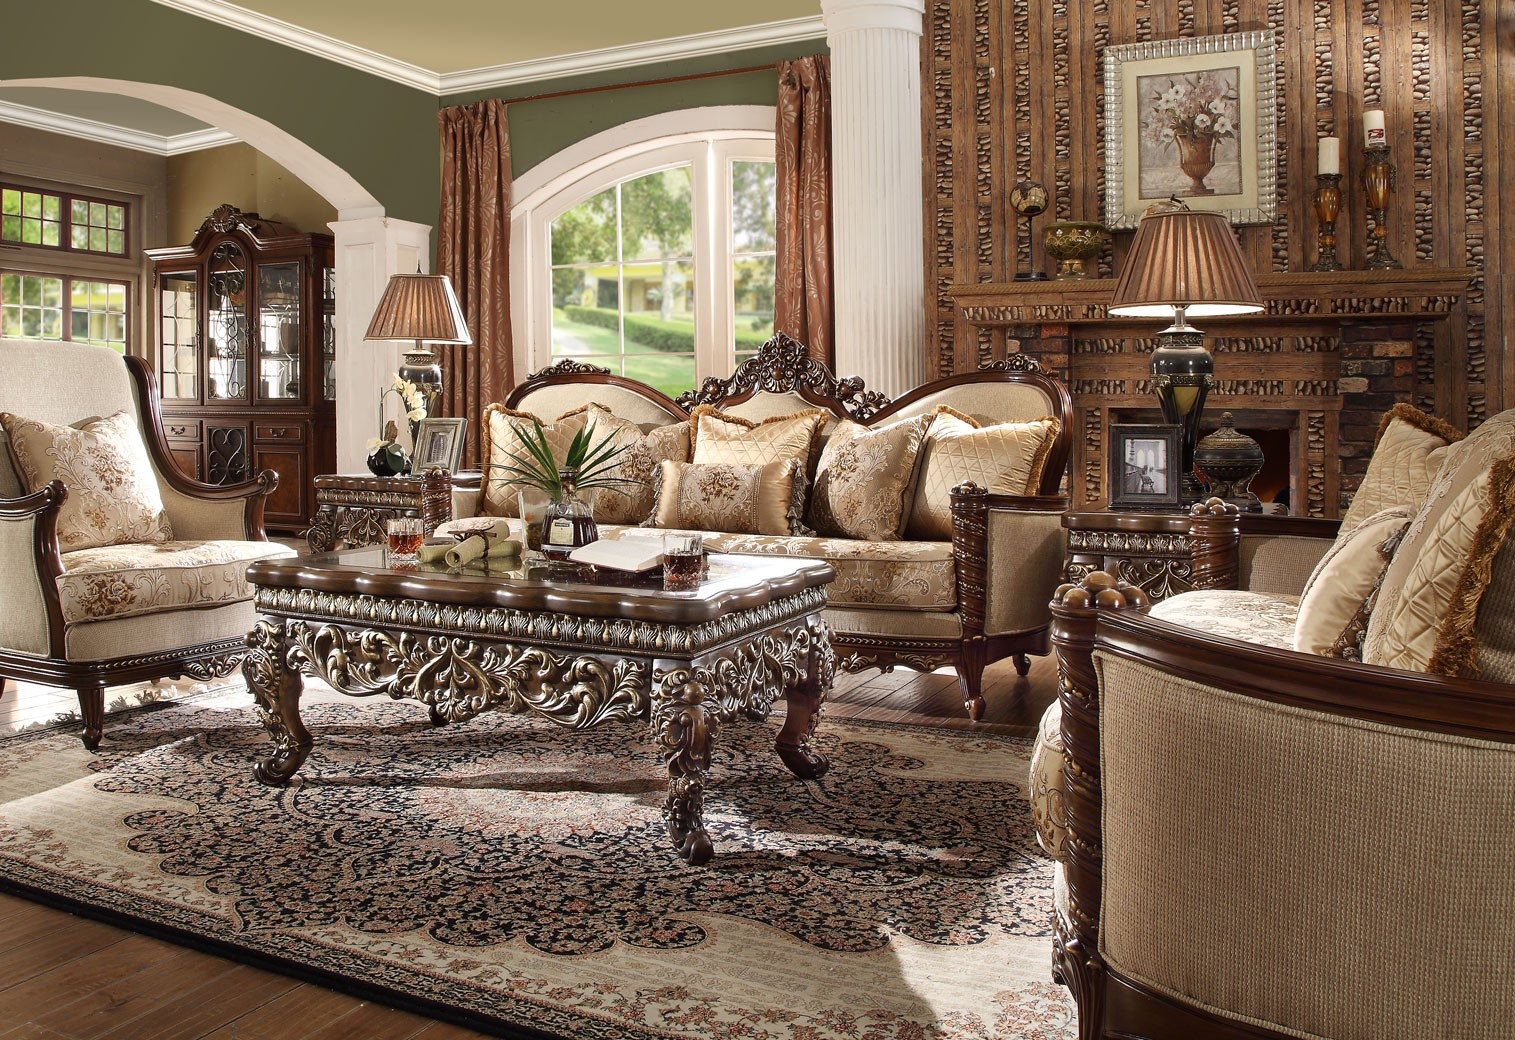 HD 92 Homey Design upholstery living room set Victorian, European & Classic  design Sofa Set